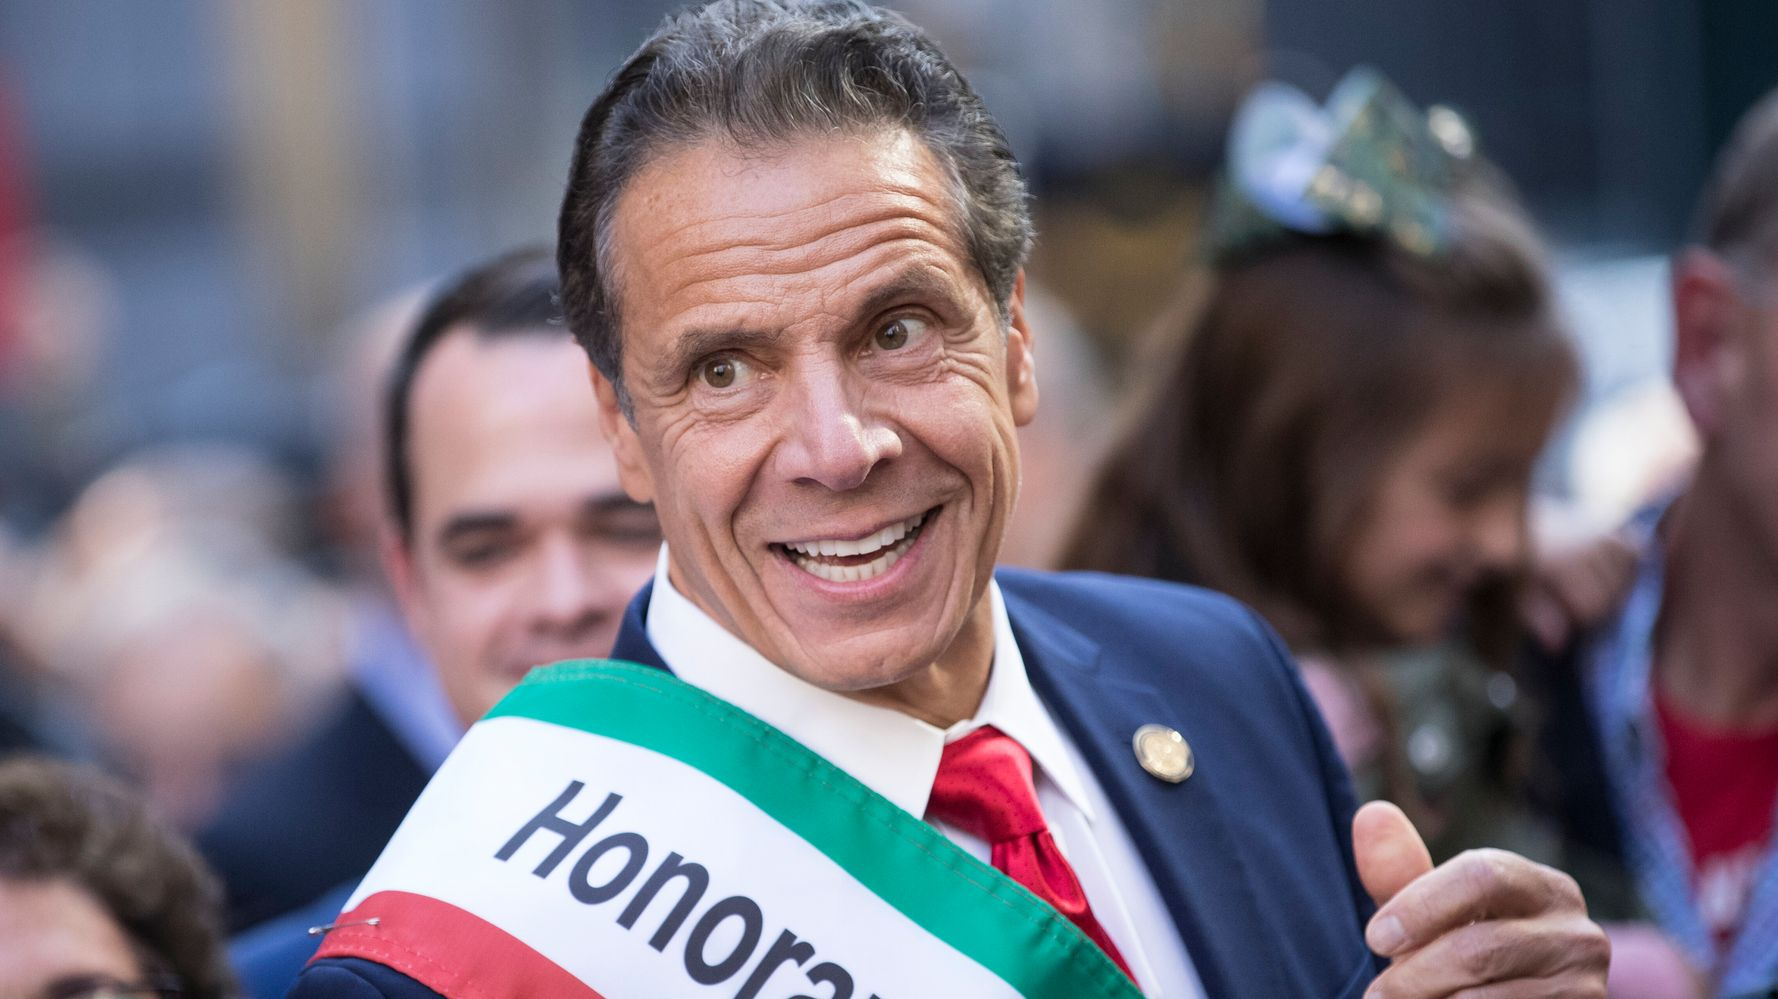 Westlake Legal Group 5da5f7512100004c0fad001b Andrew Cuomo Uses Racial Slurs In Radio Interview About Racism Against Italians